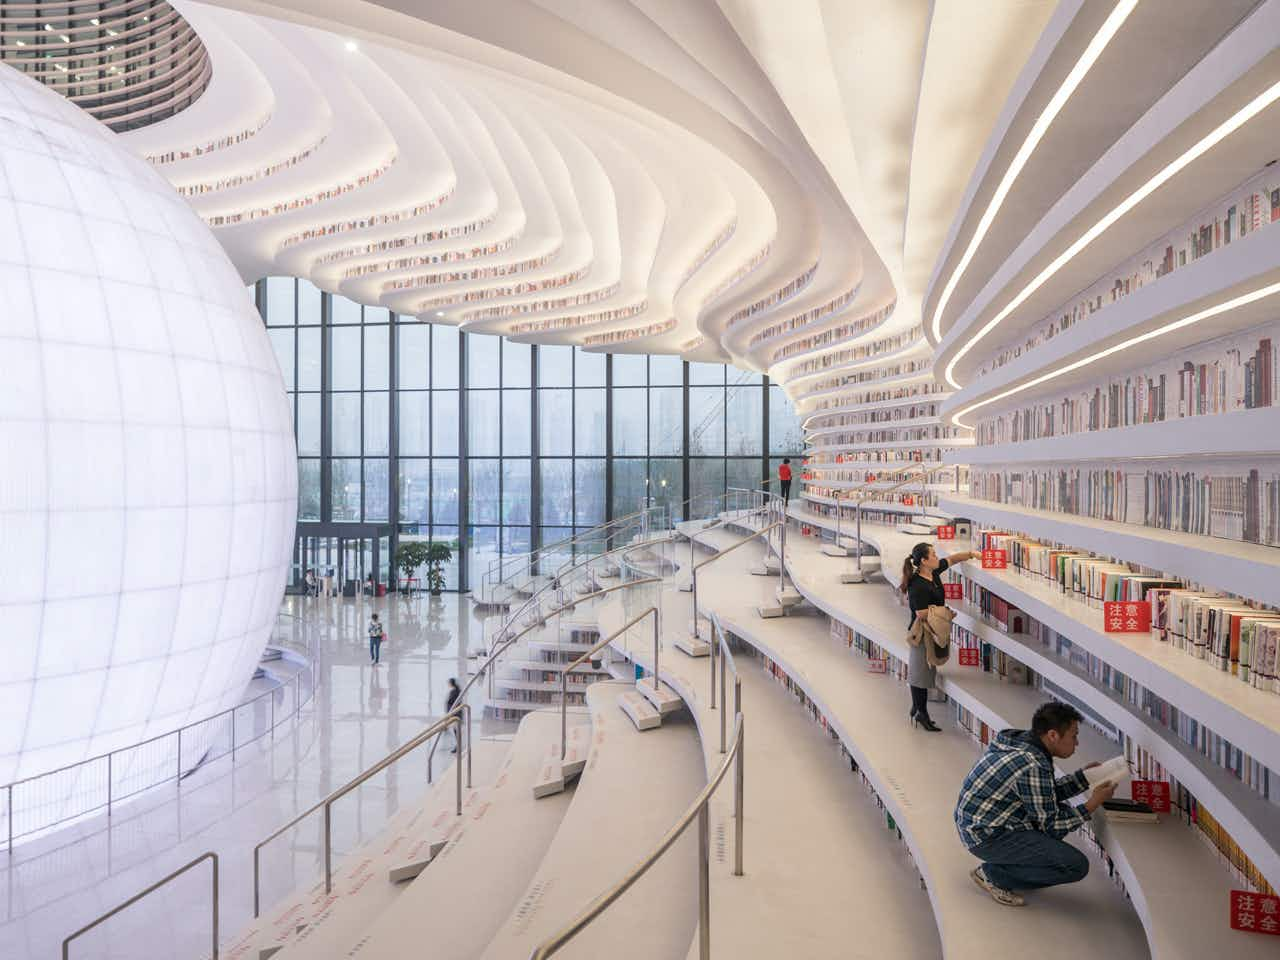 This futuristic library with more than a million books opens in China